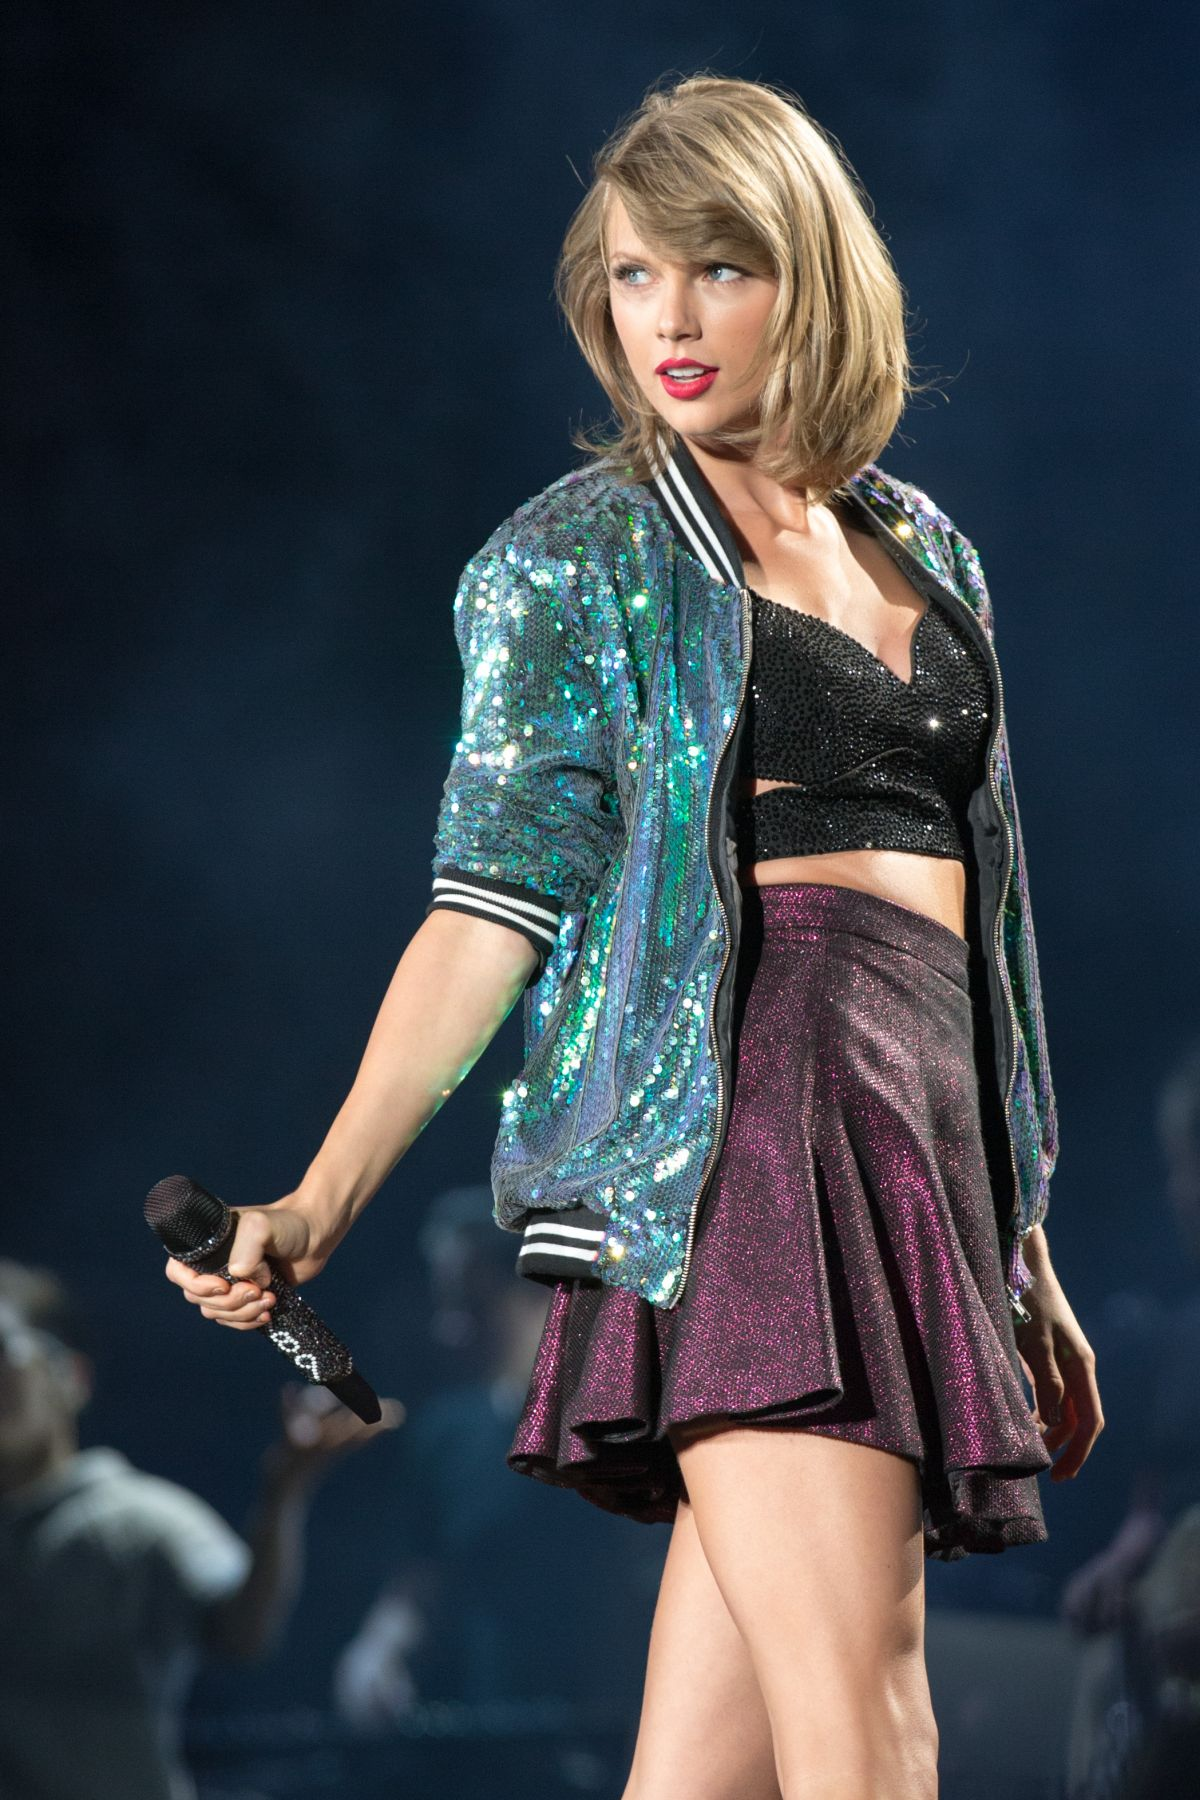 Taylor Swift At 1989 World Tour In Chicago 07 19 2015 Hawtcelebs